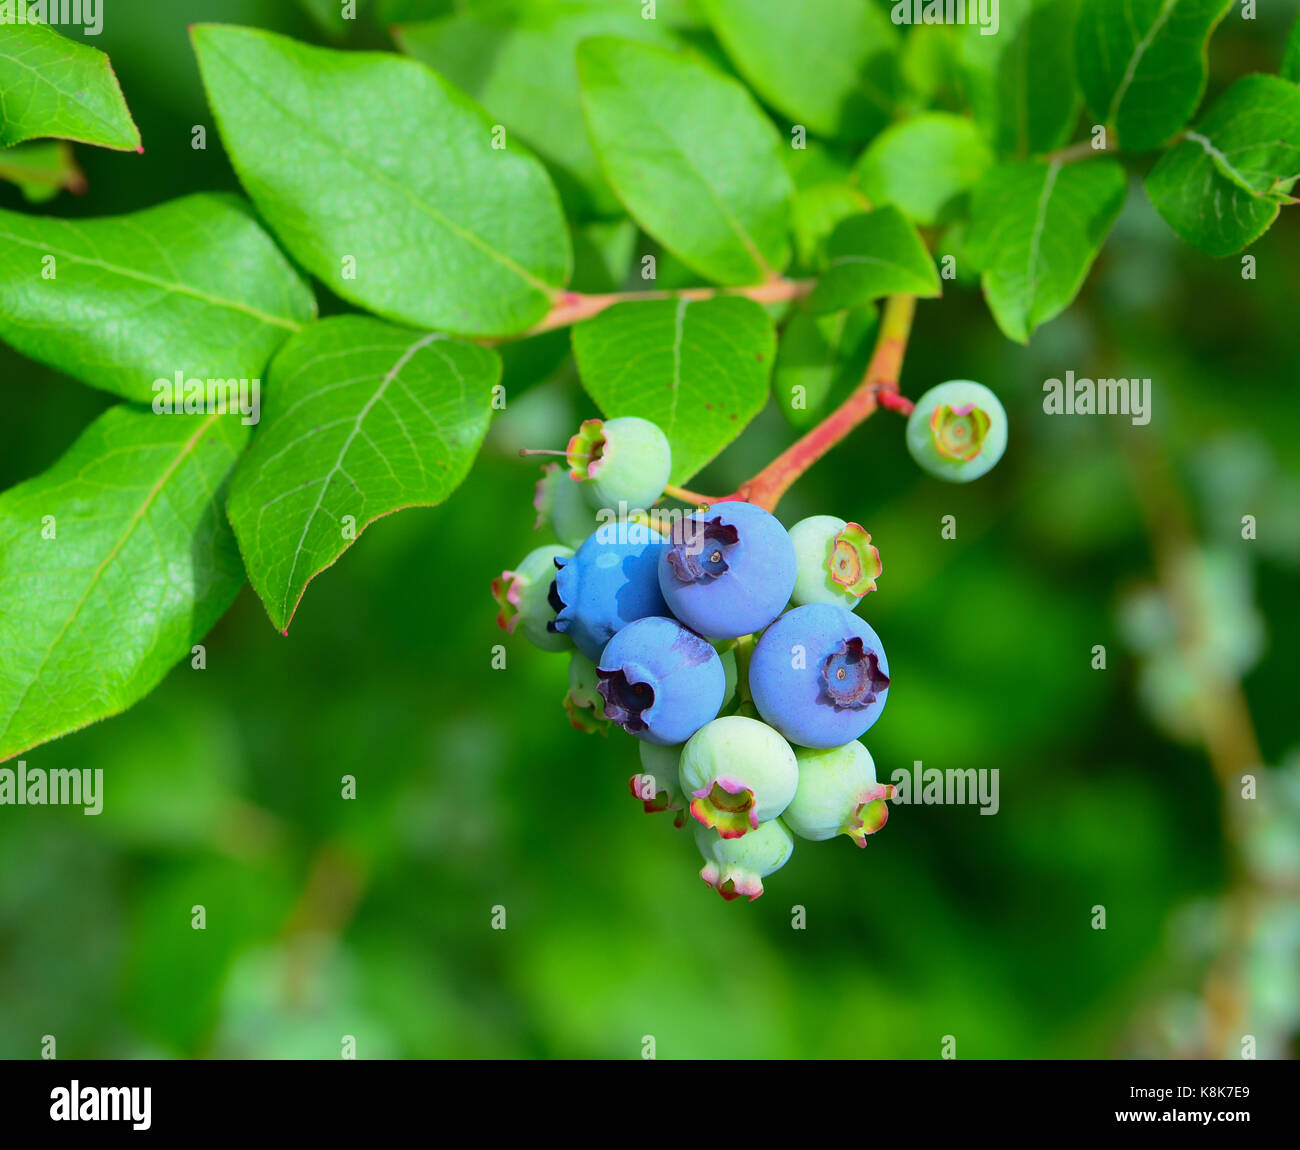 Wild blueberries ripening on the vine in a wilderness meadow. - Stock Image